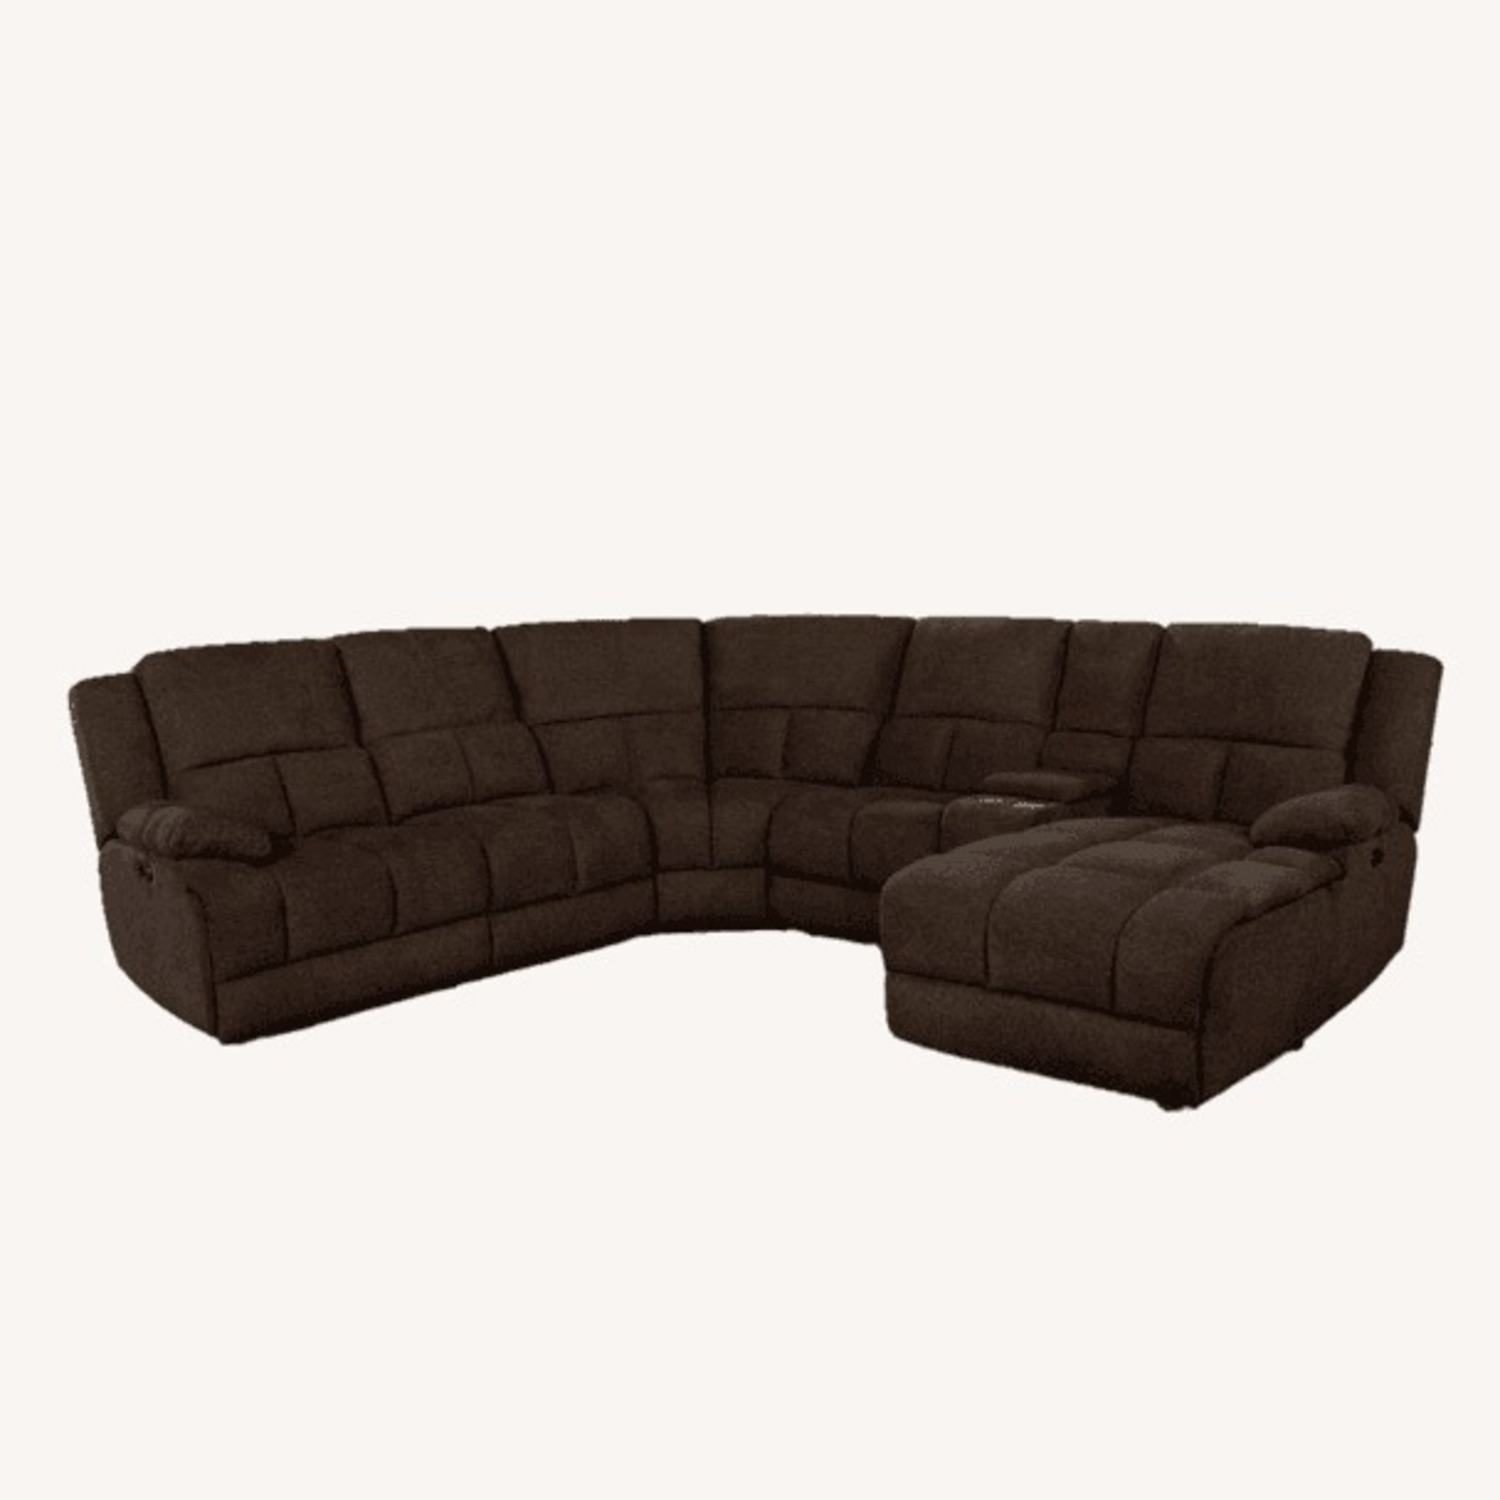 6Piece Power Sectional In Brown Performance Fabric - image-1